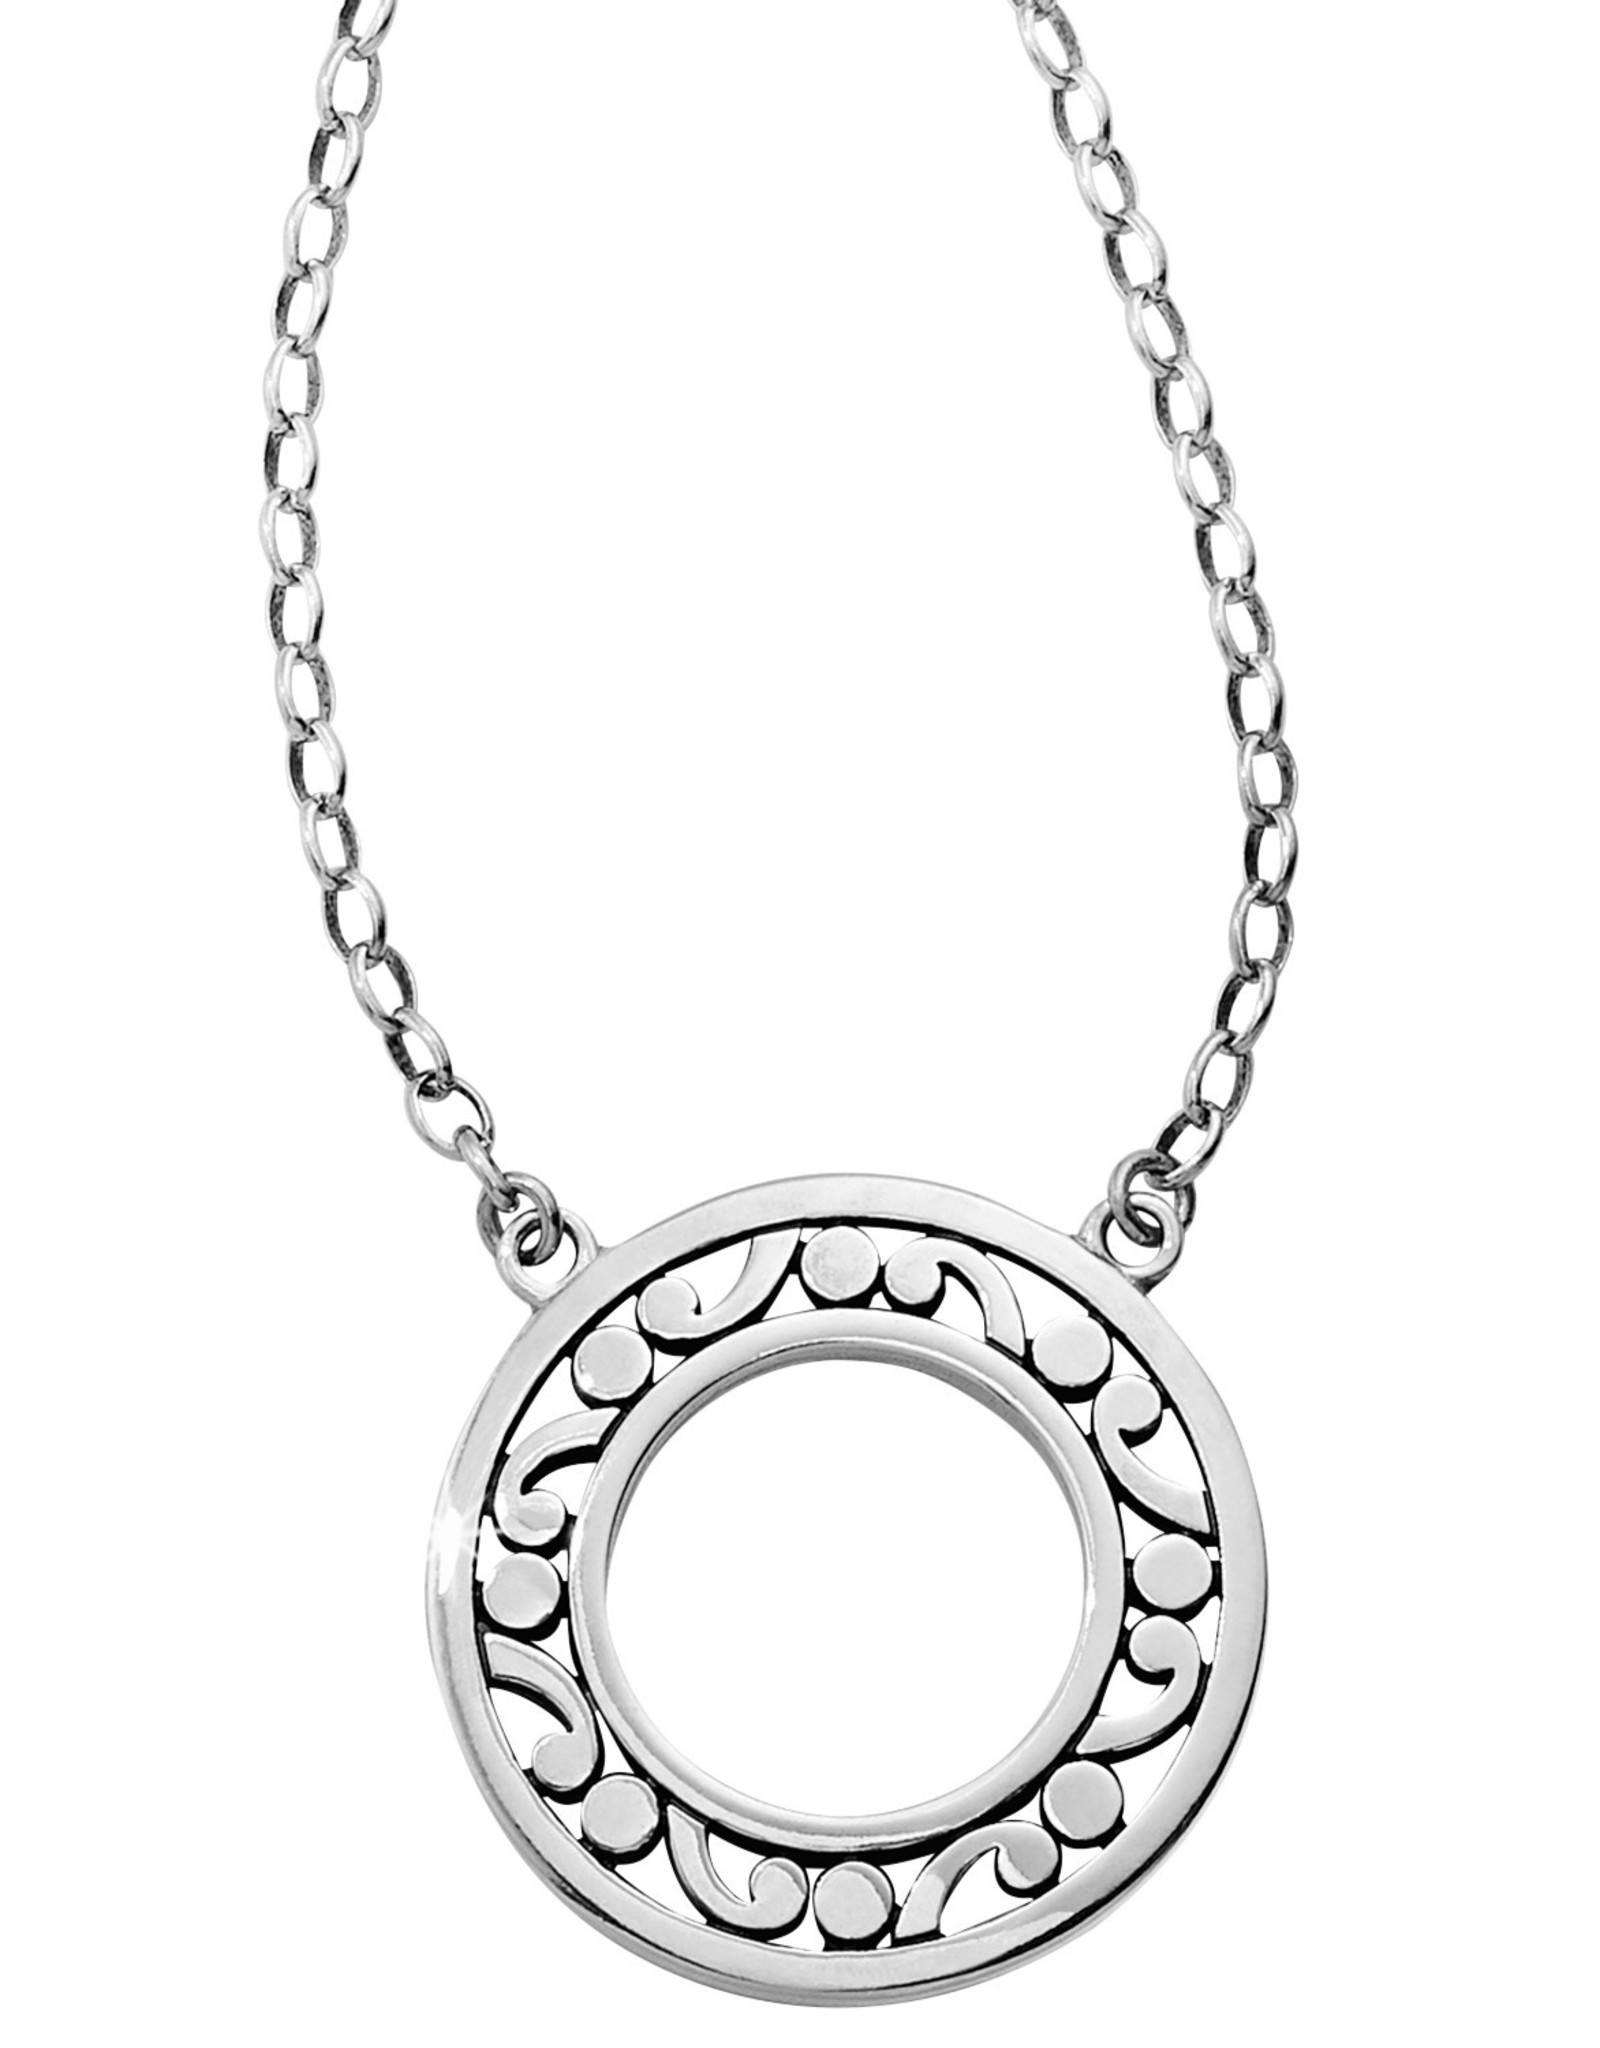 Brighton Brighton Necklace Contempo Open Ring